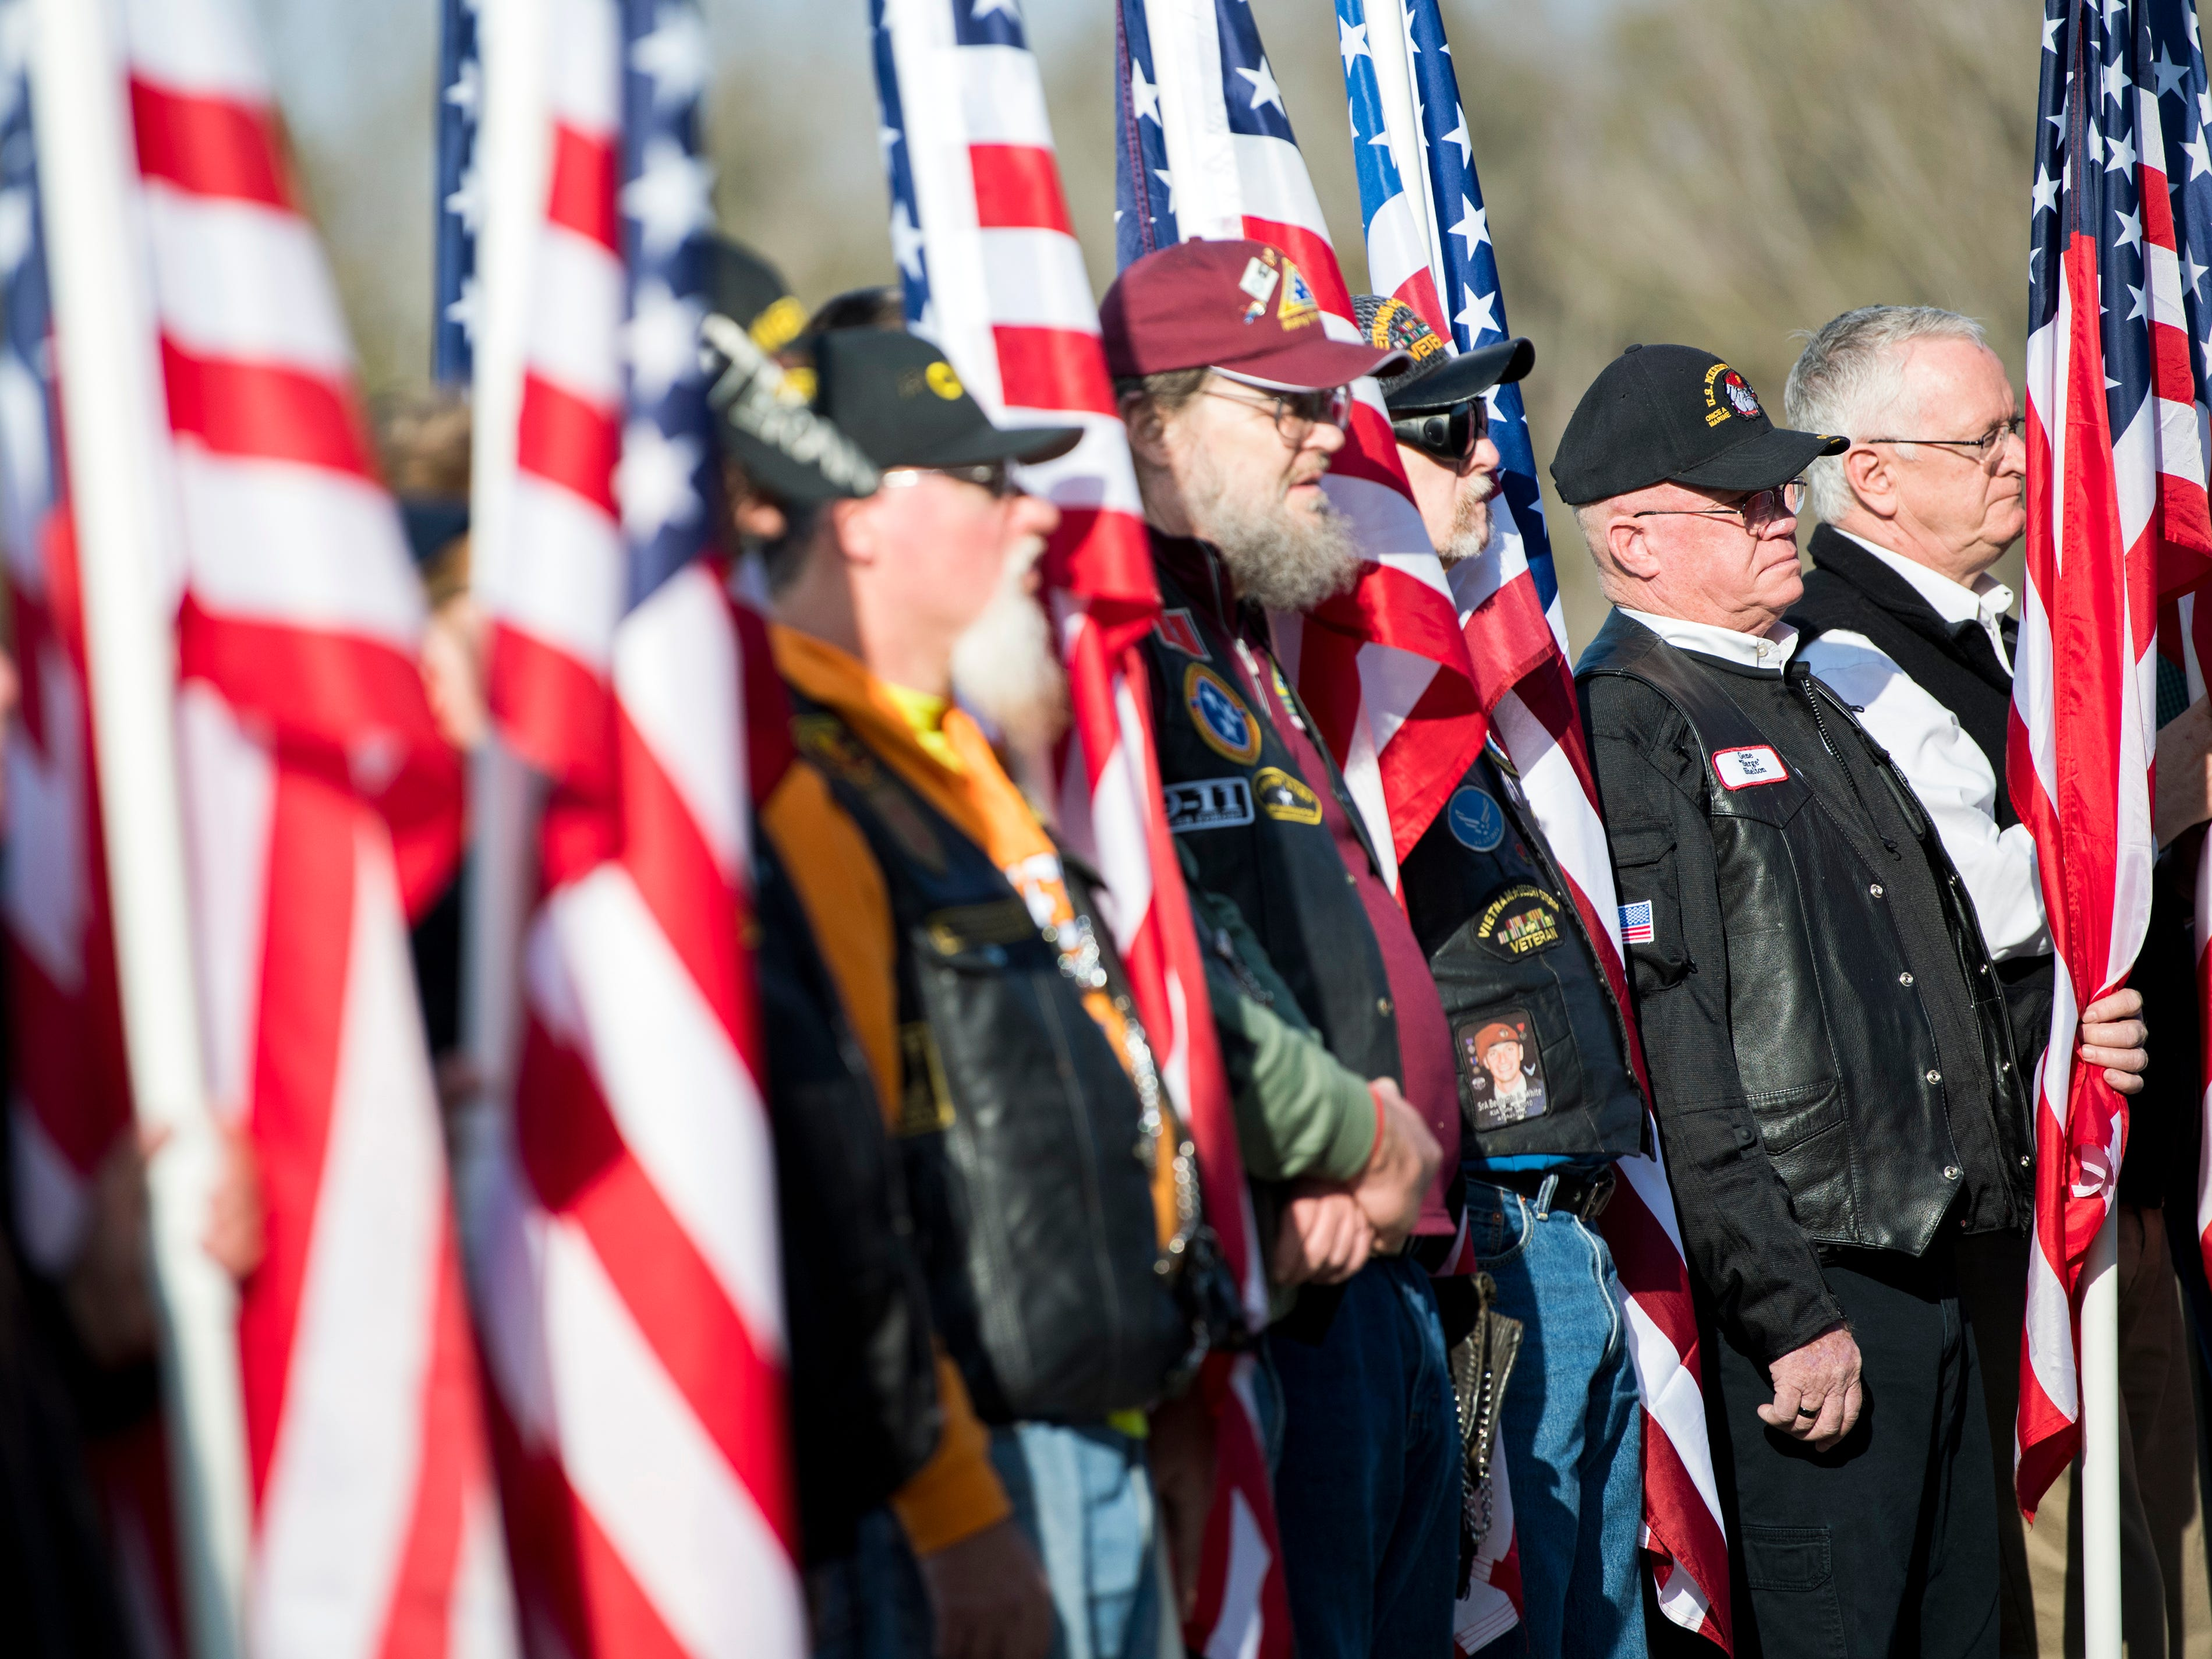 Veterans hold American flags during a military memorial service for seven East Tennessee veterans held at the East Tennessee Veterans Cemetery on Gov. John Sevier Highway on Tuesday, February 5, 2019.